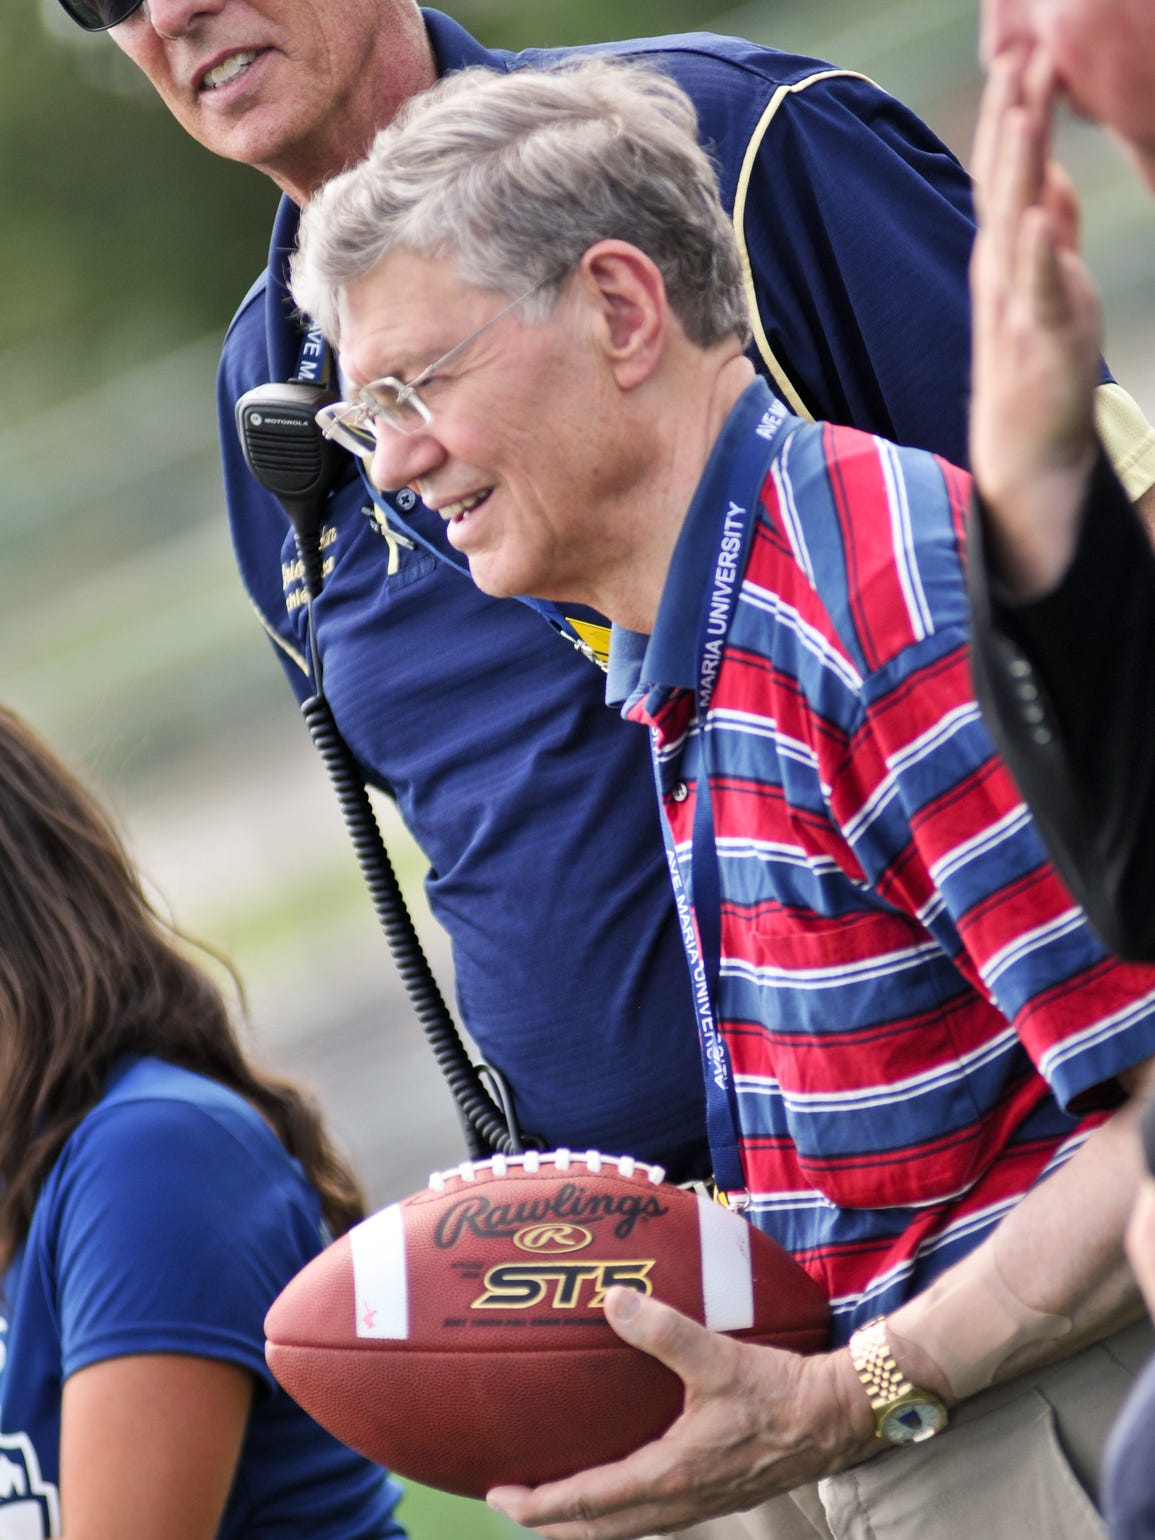 Ave Maria founder Tom Monaghan waits on the sidelines